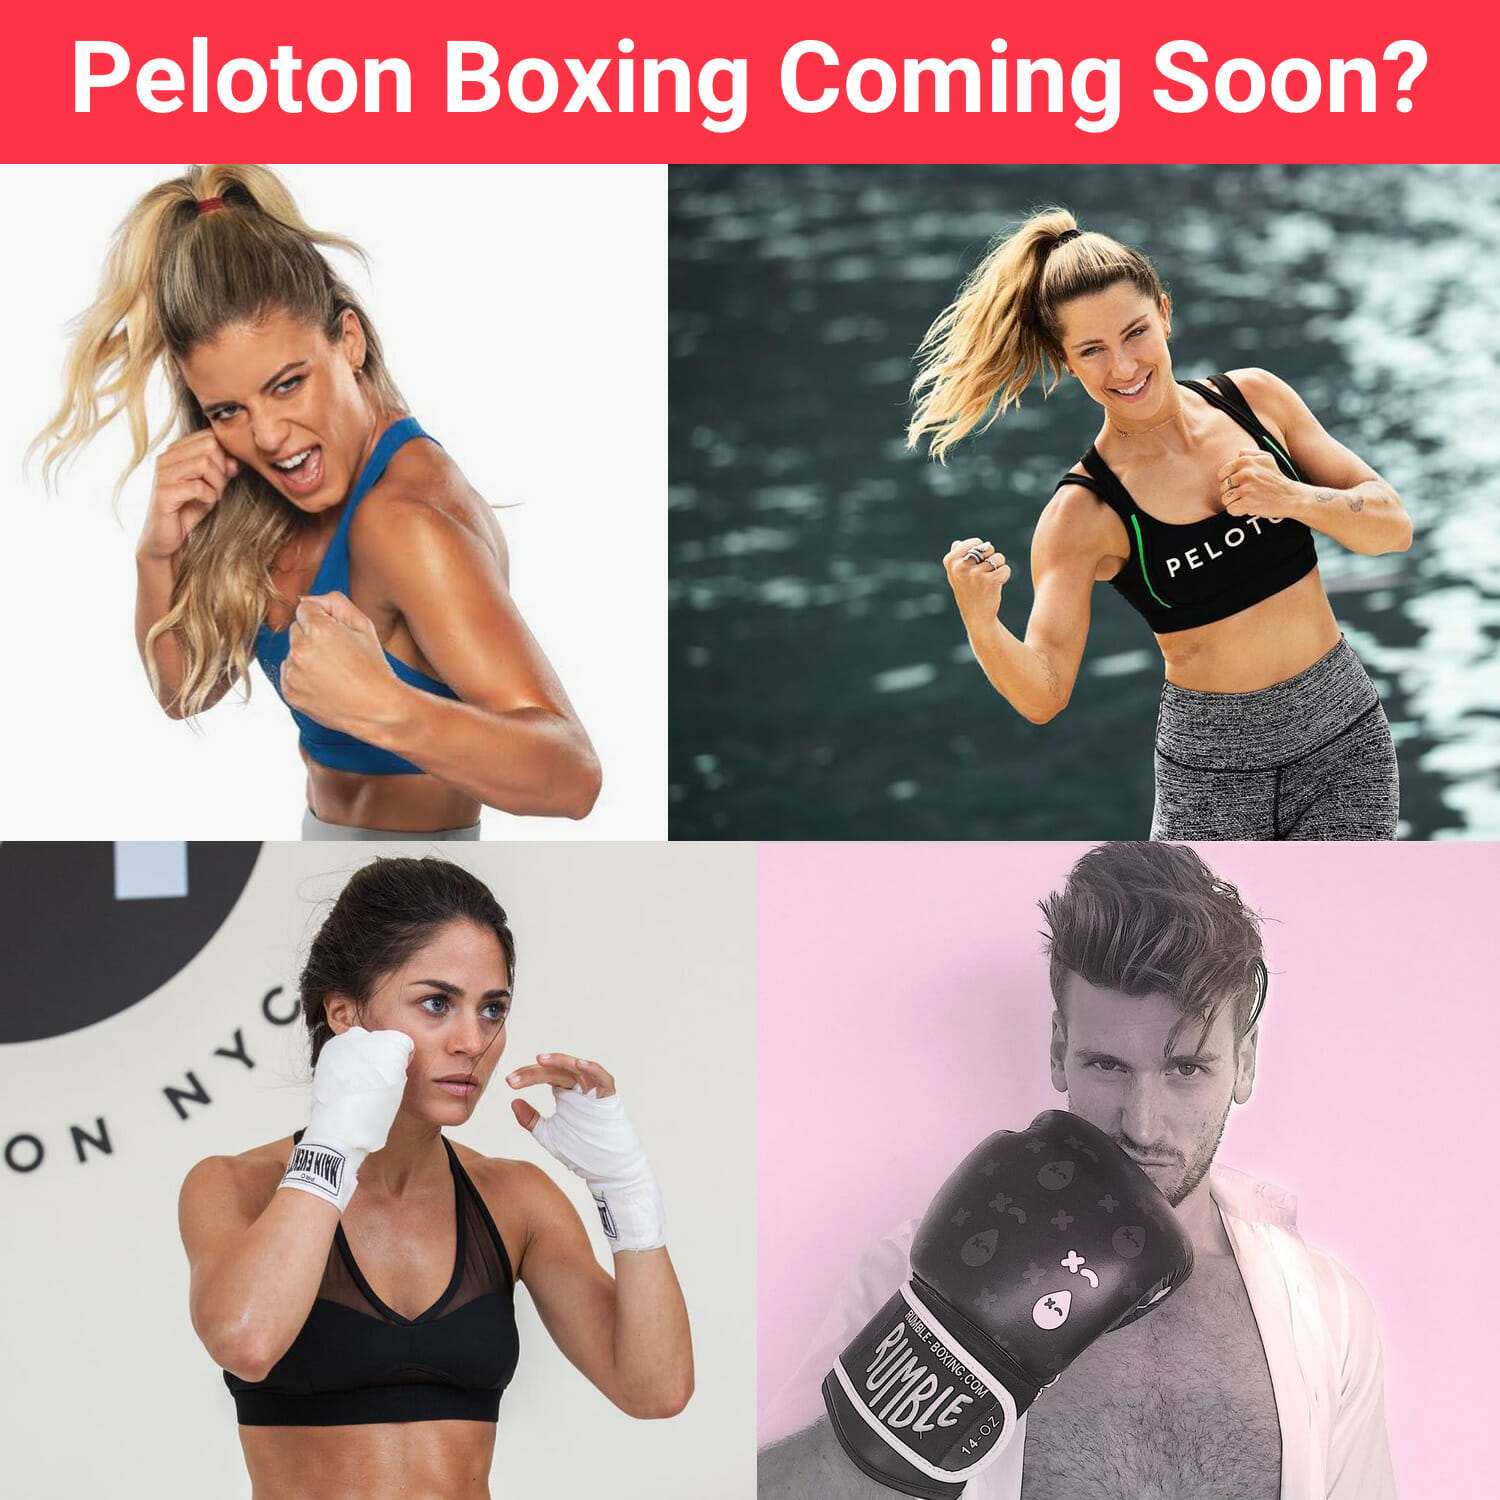 Image of Peloton instructors in boxing poses.